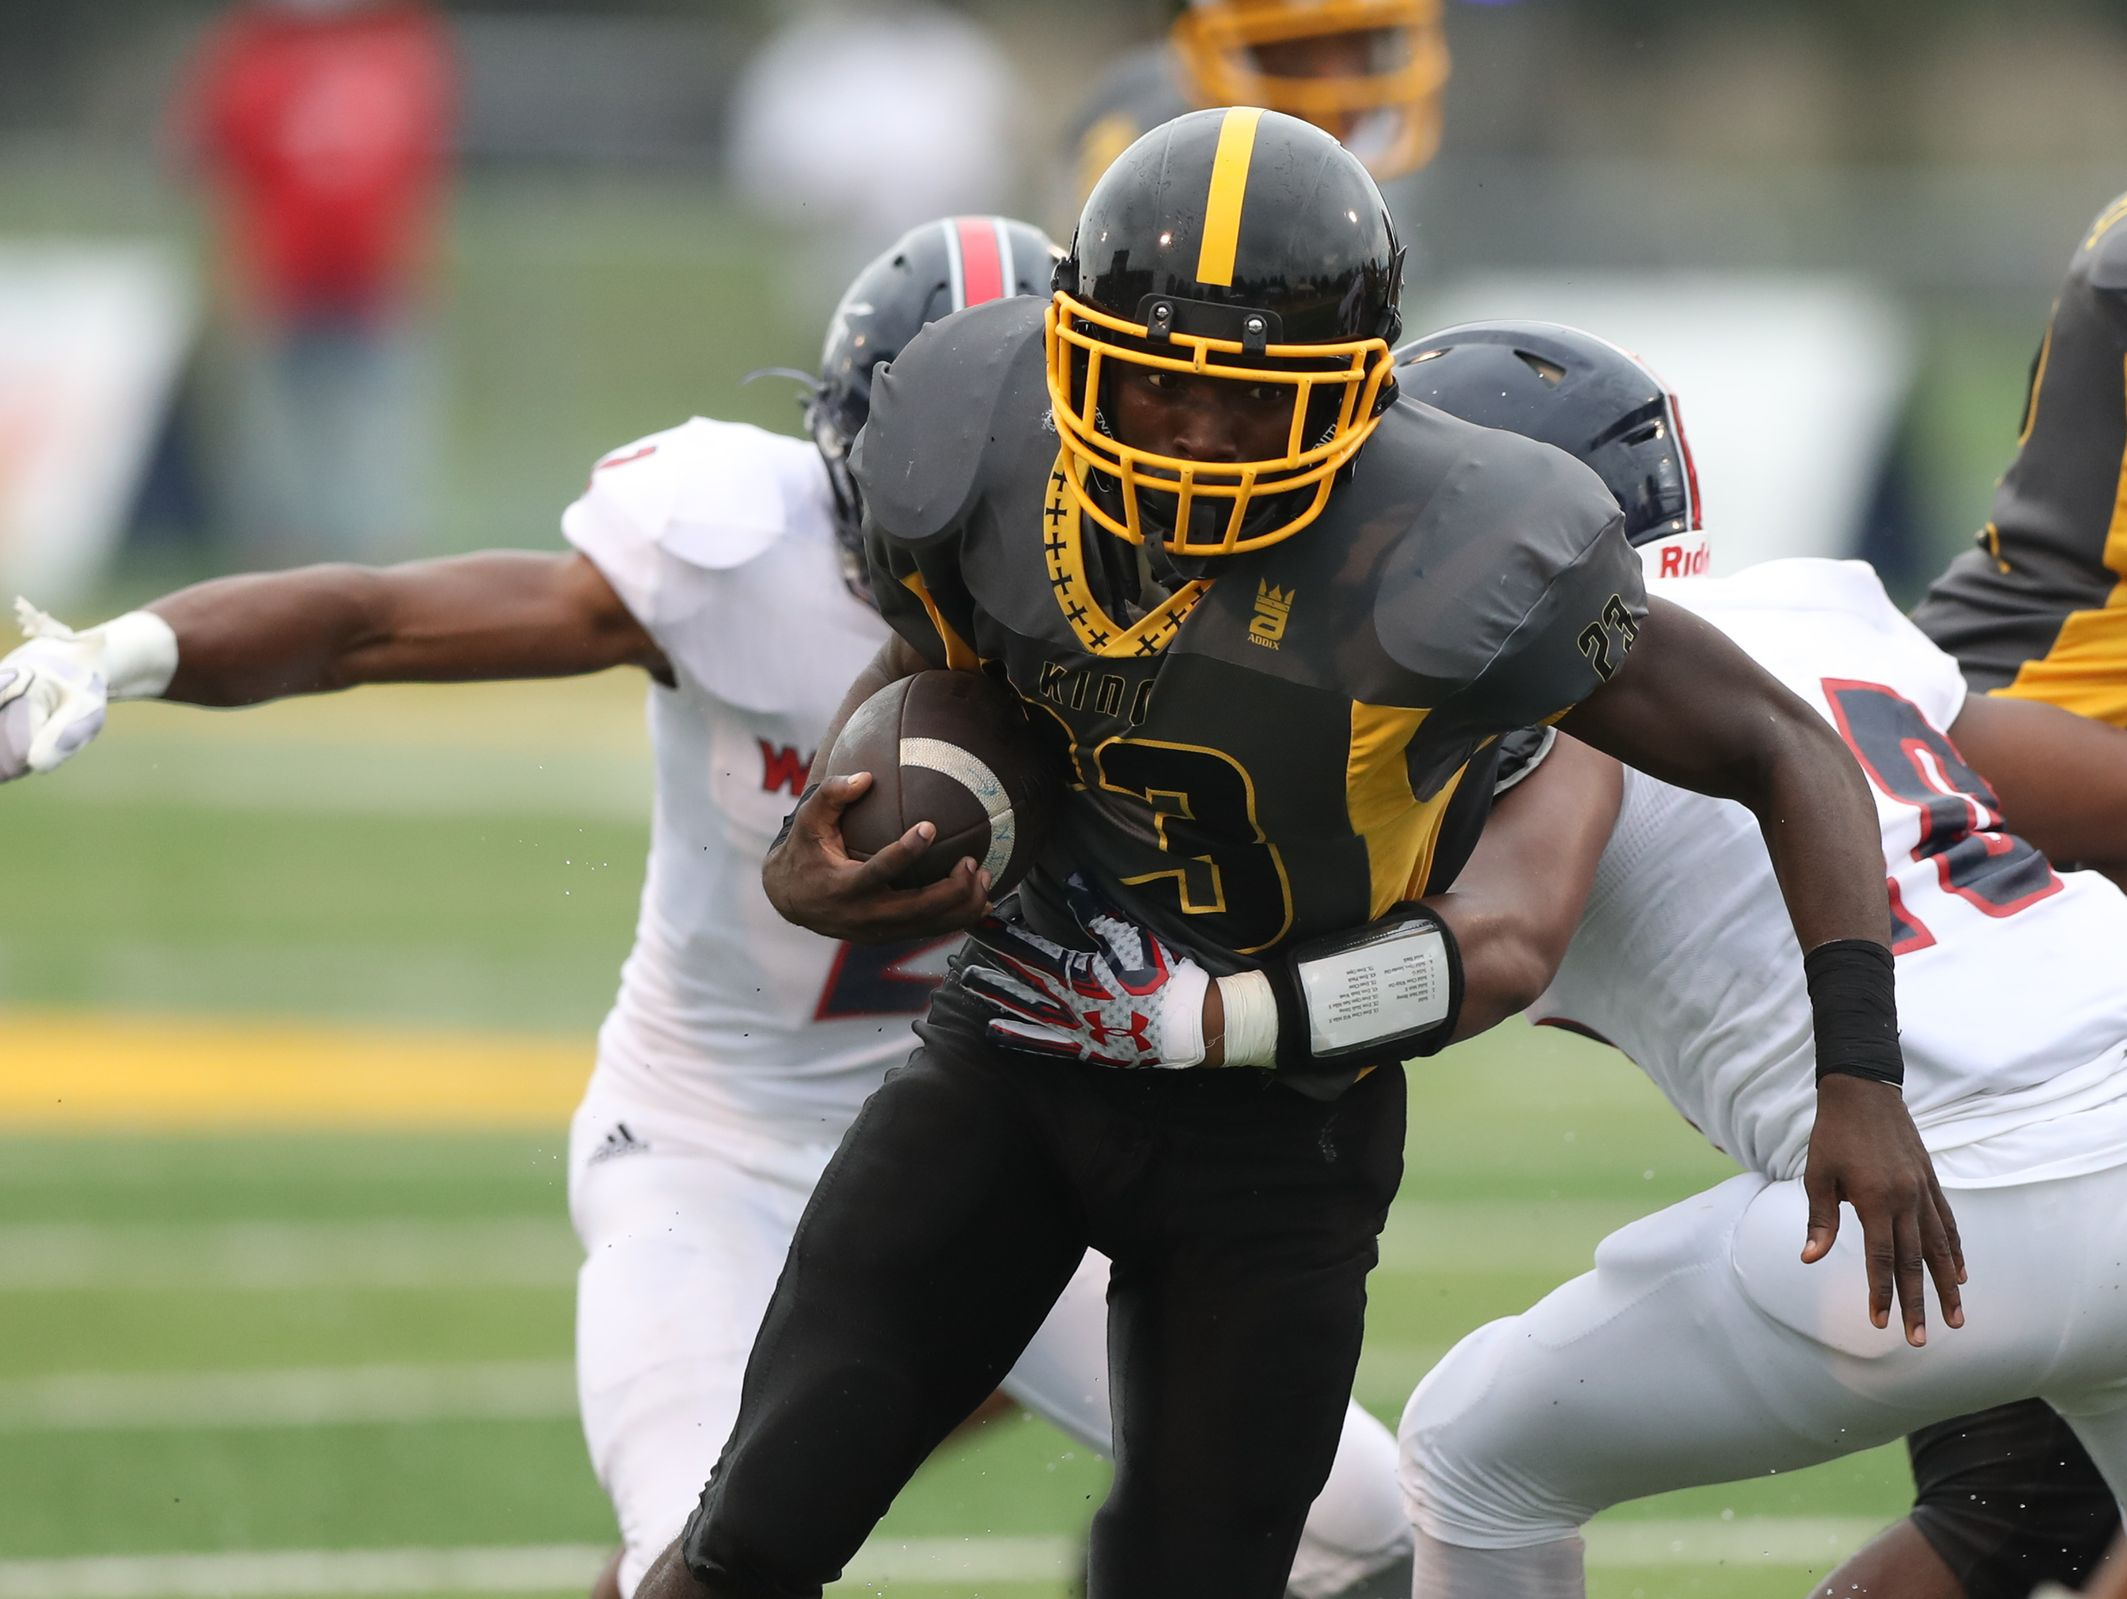 Detroit King's high schools Kevin Willis runs the ball against Southfield A&T high school during first half action of the Prep Kickoff Classic game Saturday, August 27, 2016 at Wayne State University in Detroit MI. Kirthmon F. Dozier/Detroit Free Press